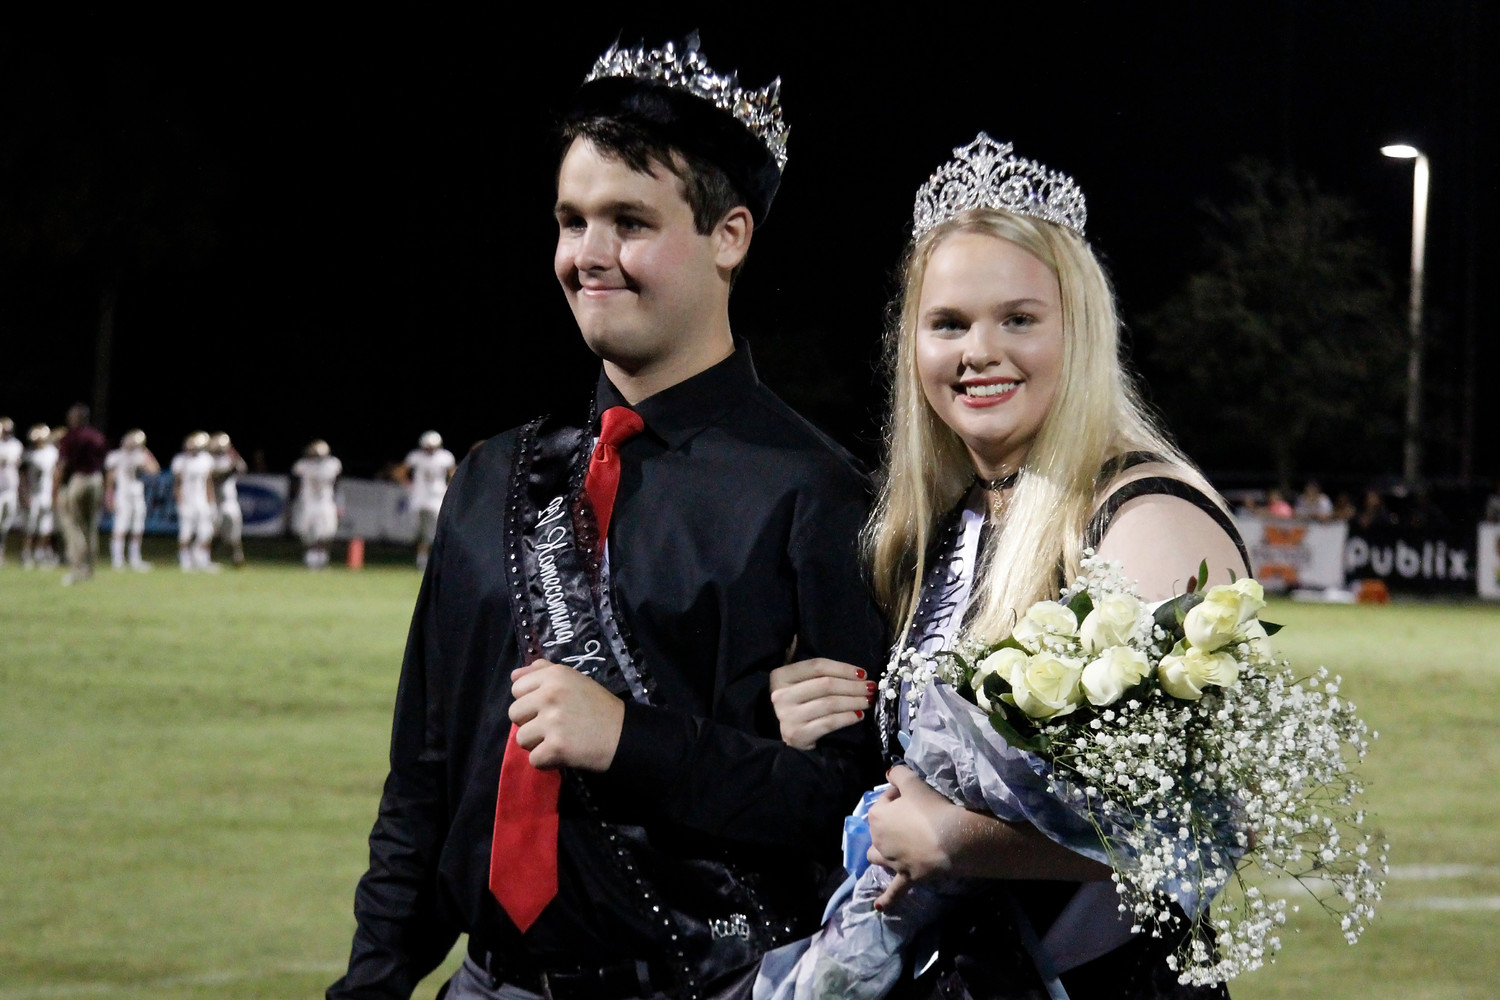 Homecoming King and Queen Max Kren and Maddie Coffey